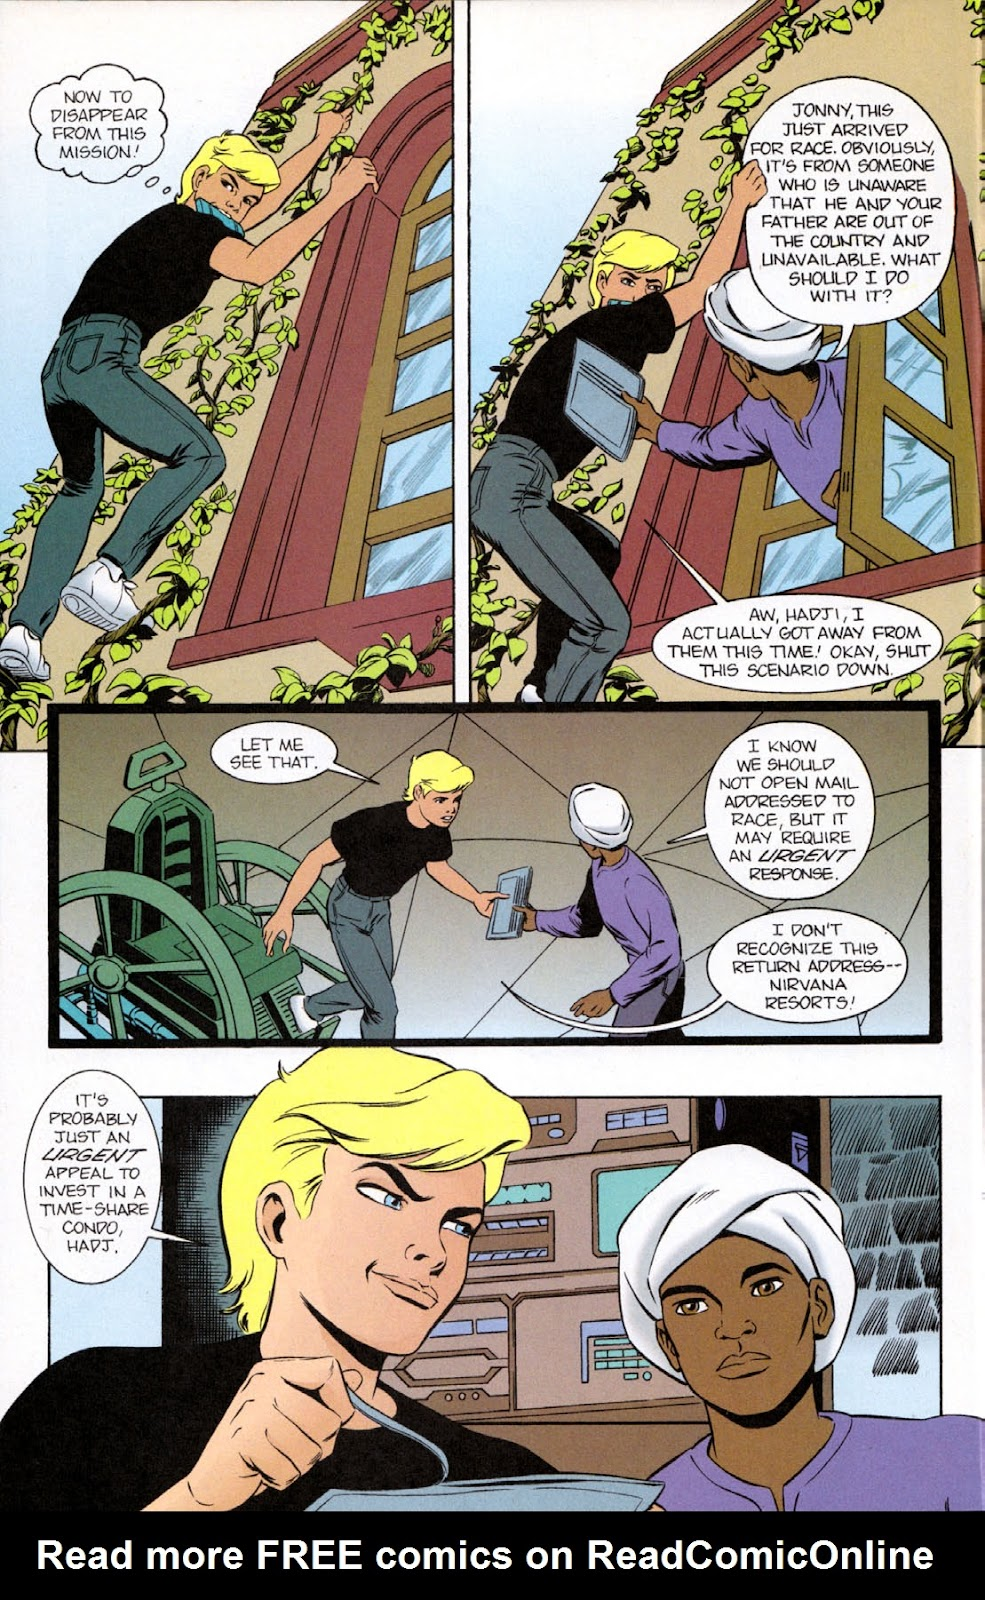 Read online The Real Adventures of Jonny Quest comic -  Issue #9 - 14